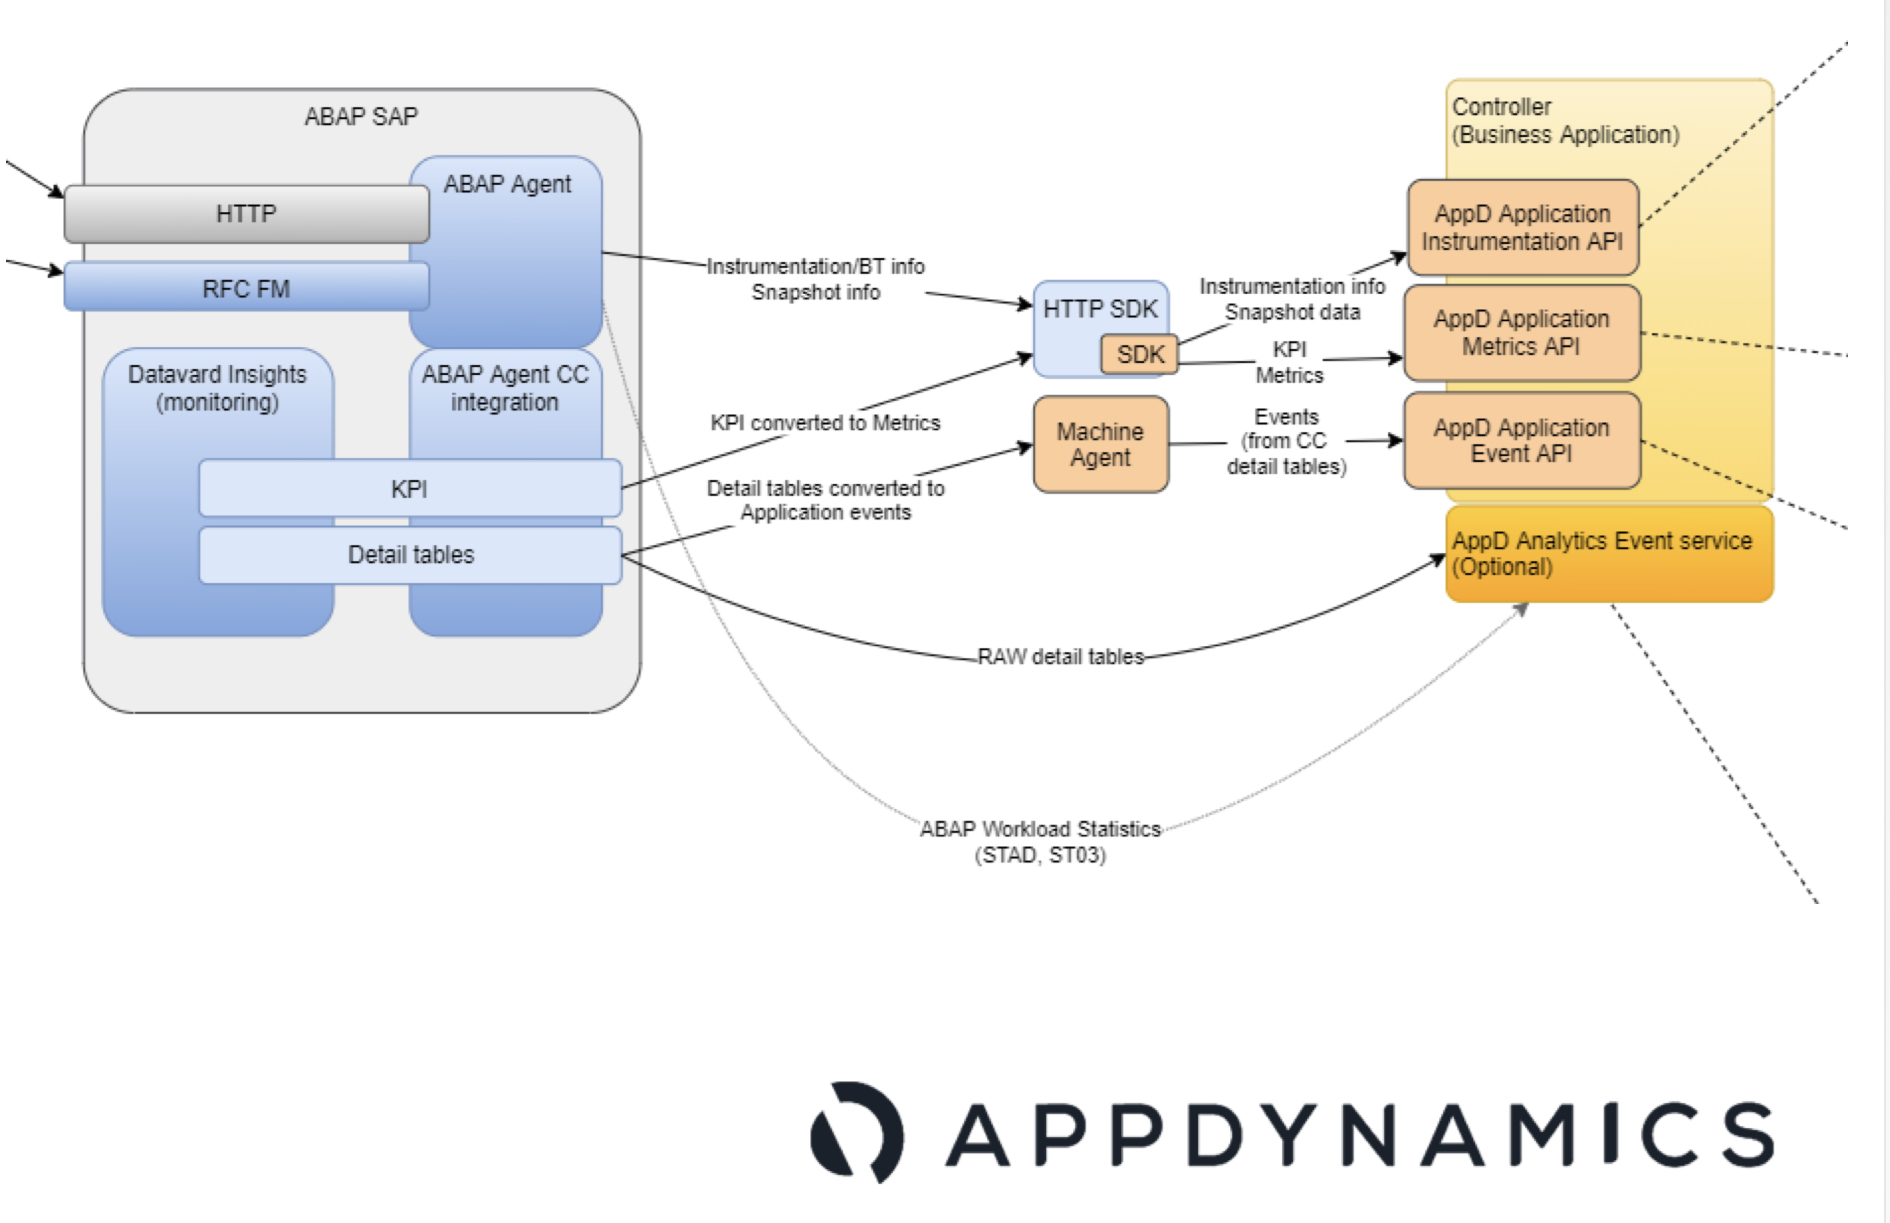 AppDynamics Services at low cost